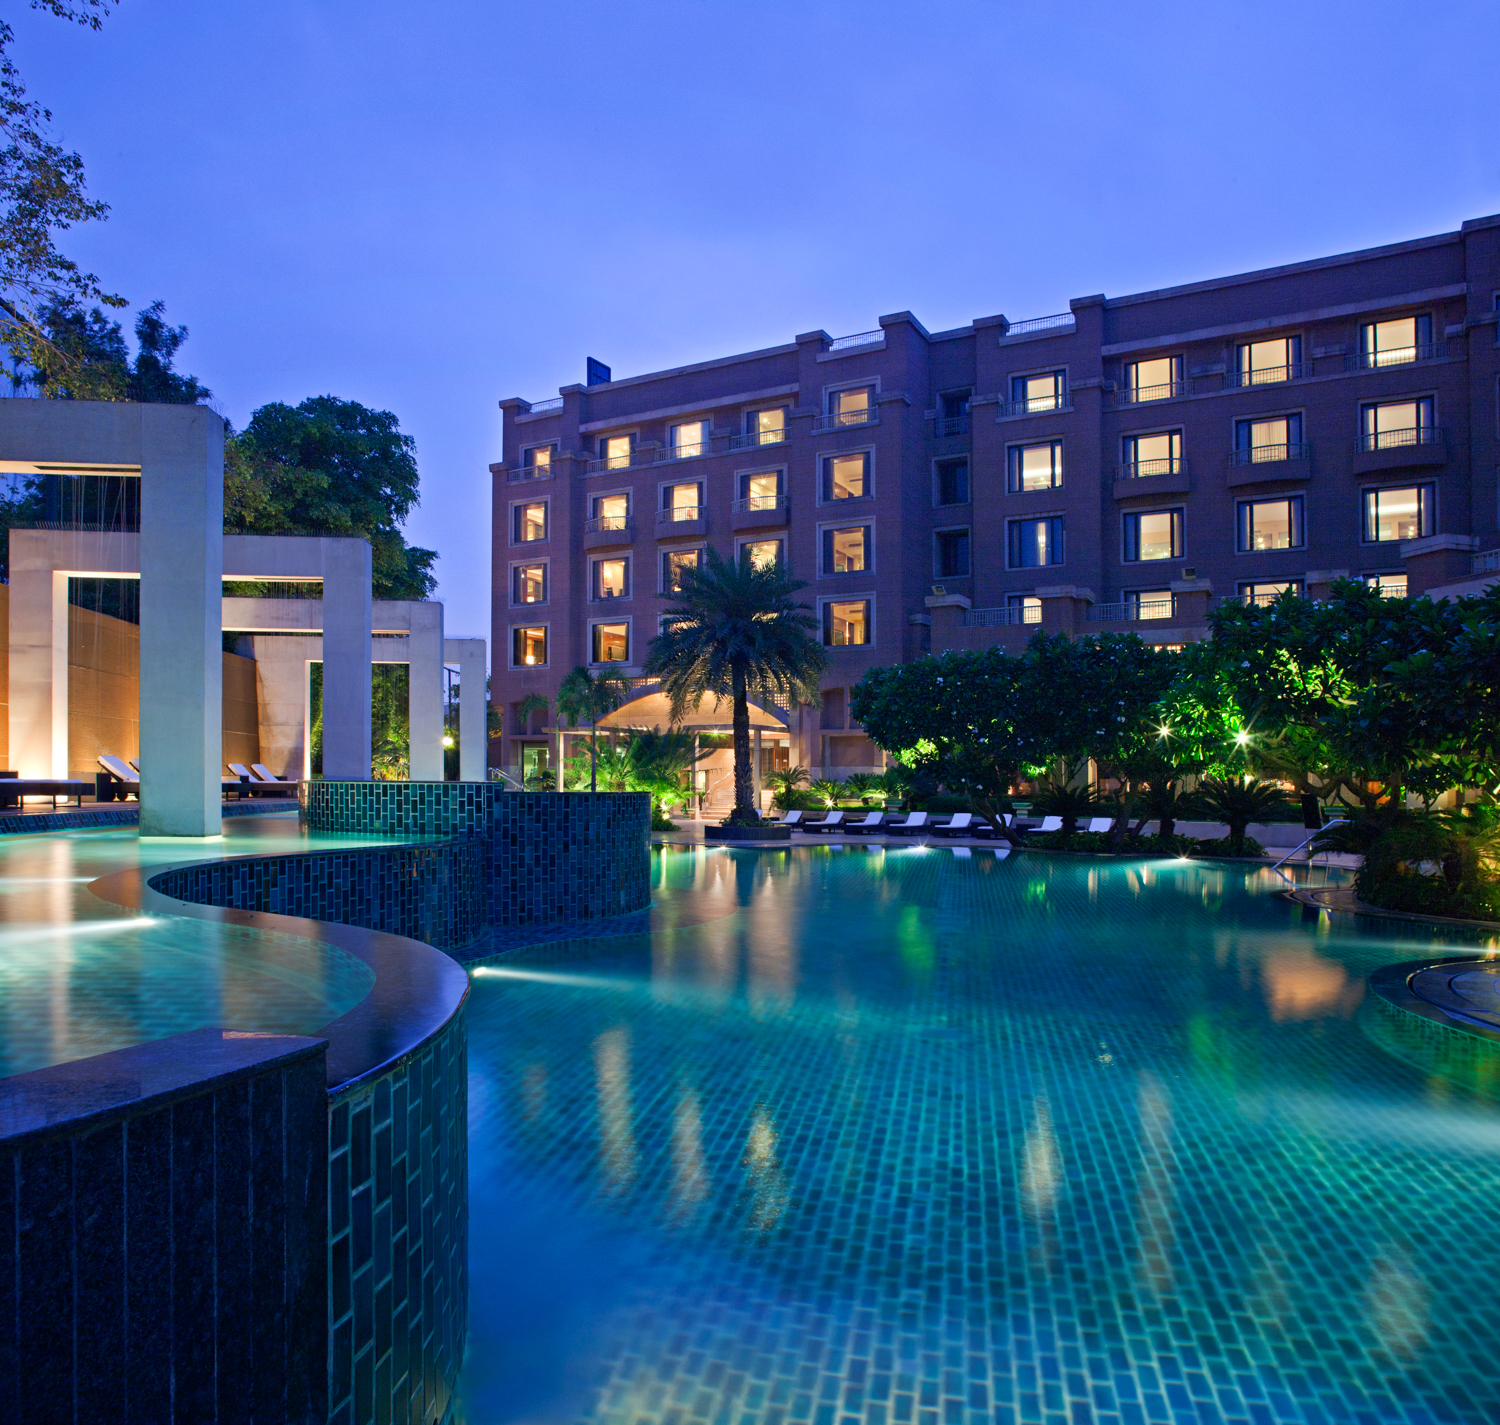 Radisson Blu Plaza Delhi Airport Hotel, Poolside. www.thingstodot.com.